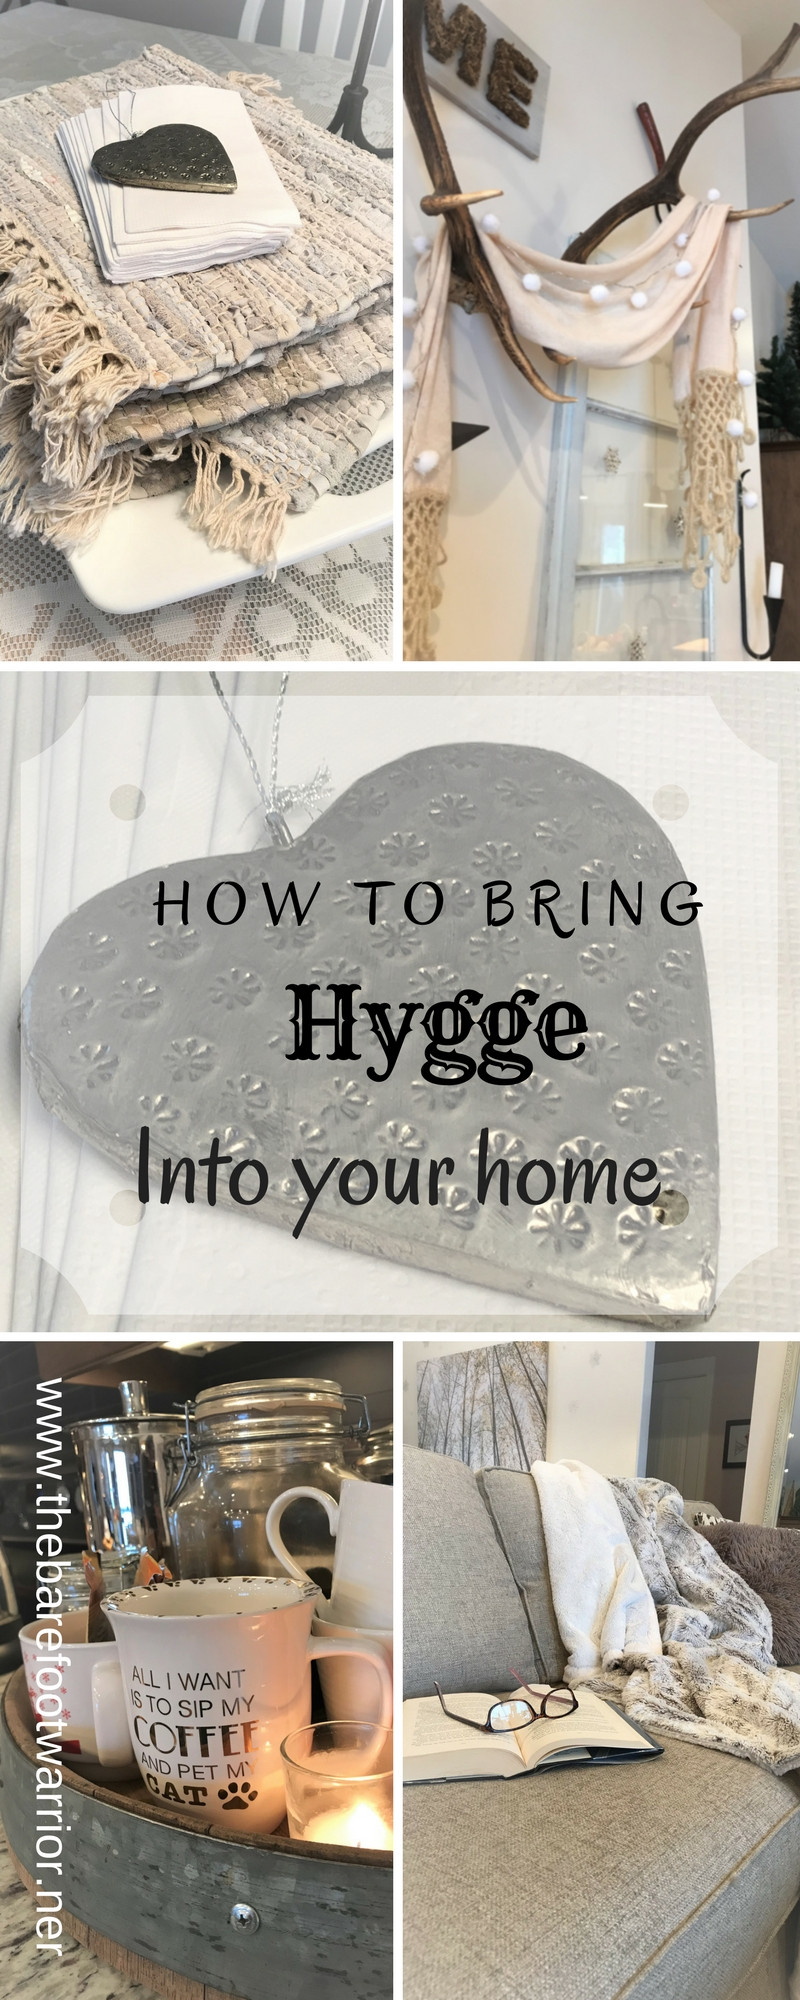 How To Bring Hygge Into Your Home